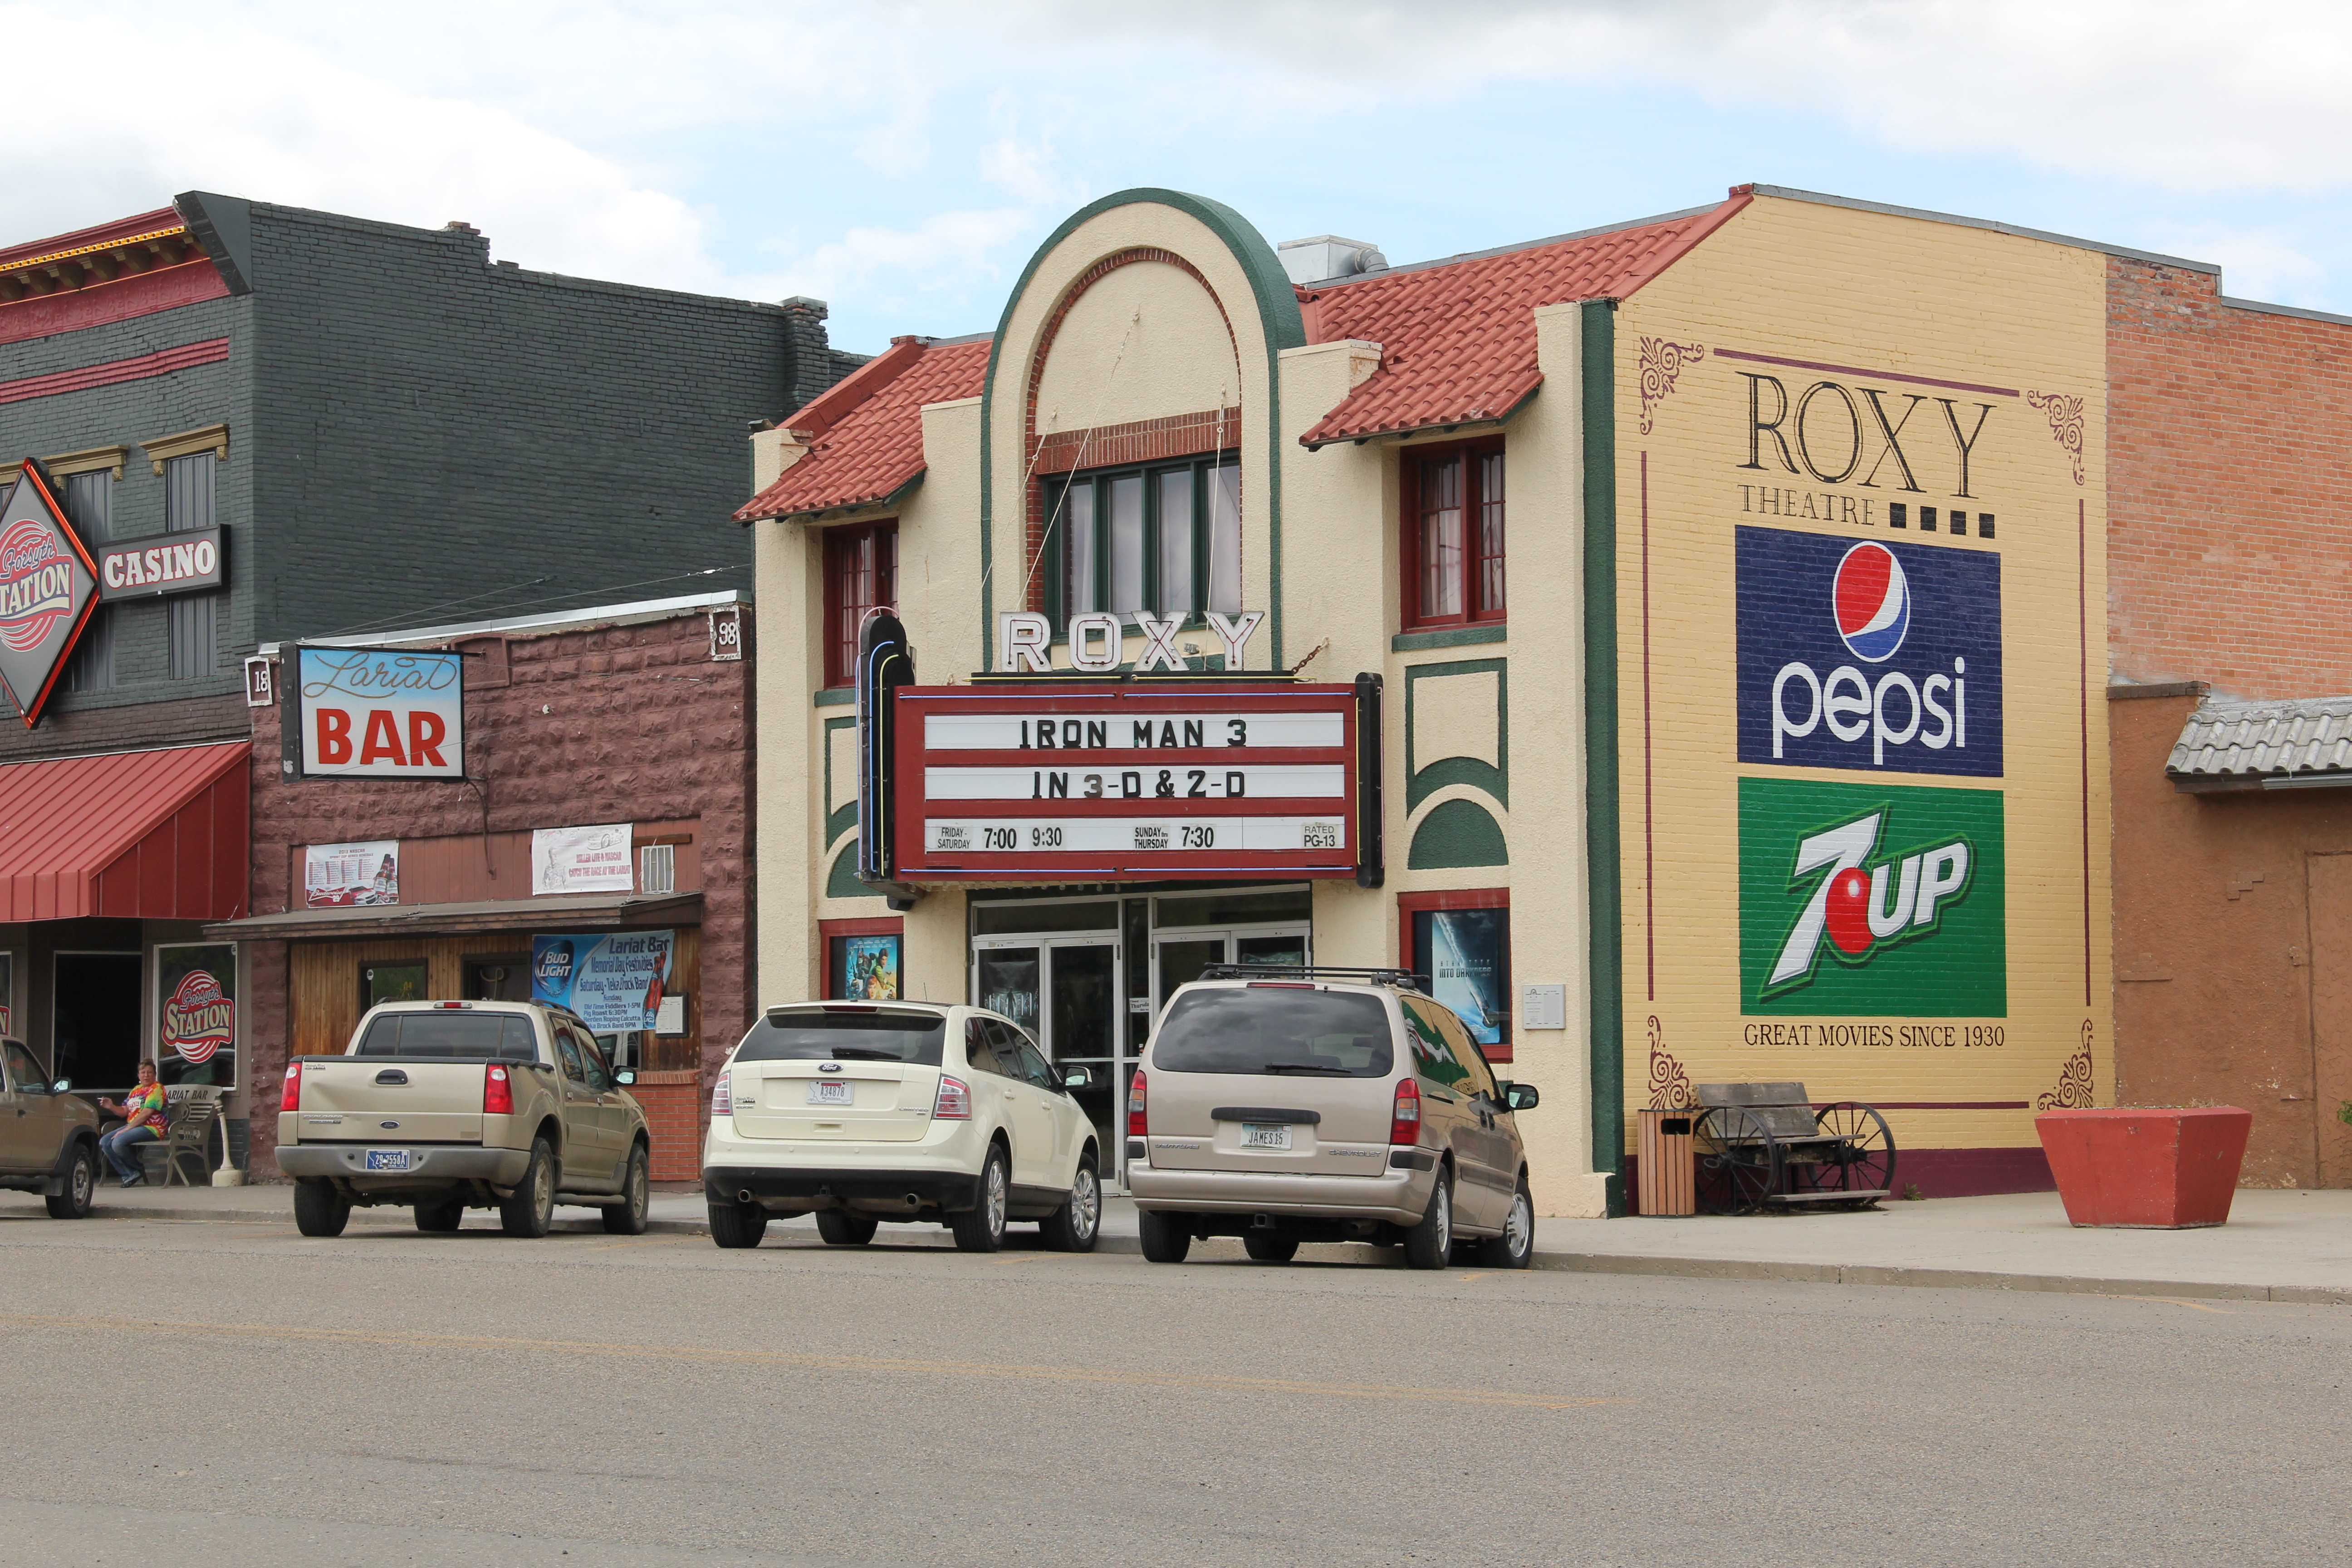 Montana rosebud county forsyth - You Really Haven T Been To Forsyth Unless You Take In A Movie At The Roxy Theater 1930 And An After Movie Libation At The Lariat Bar